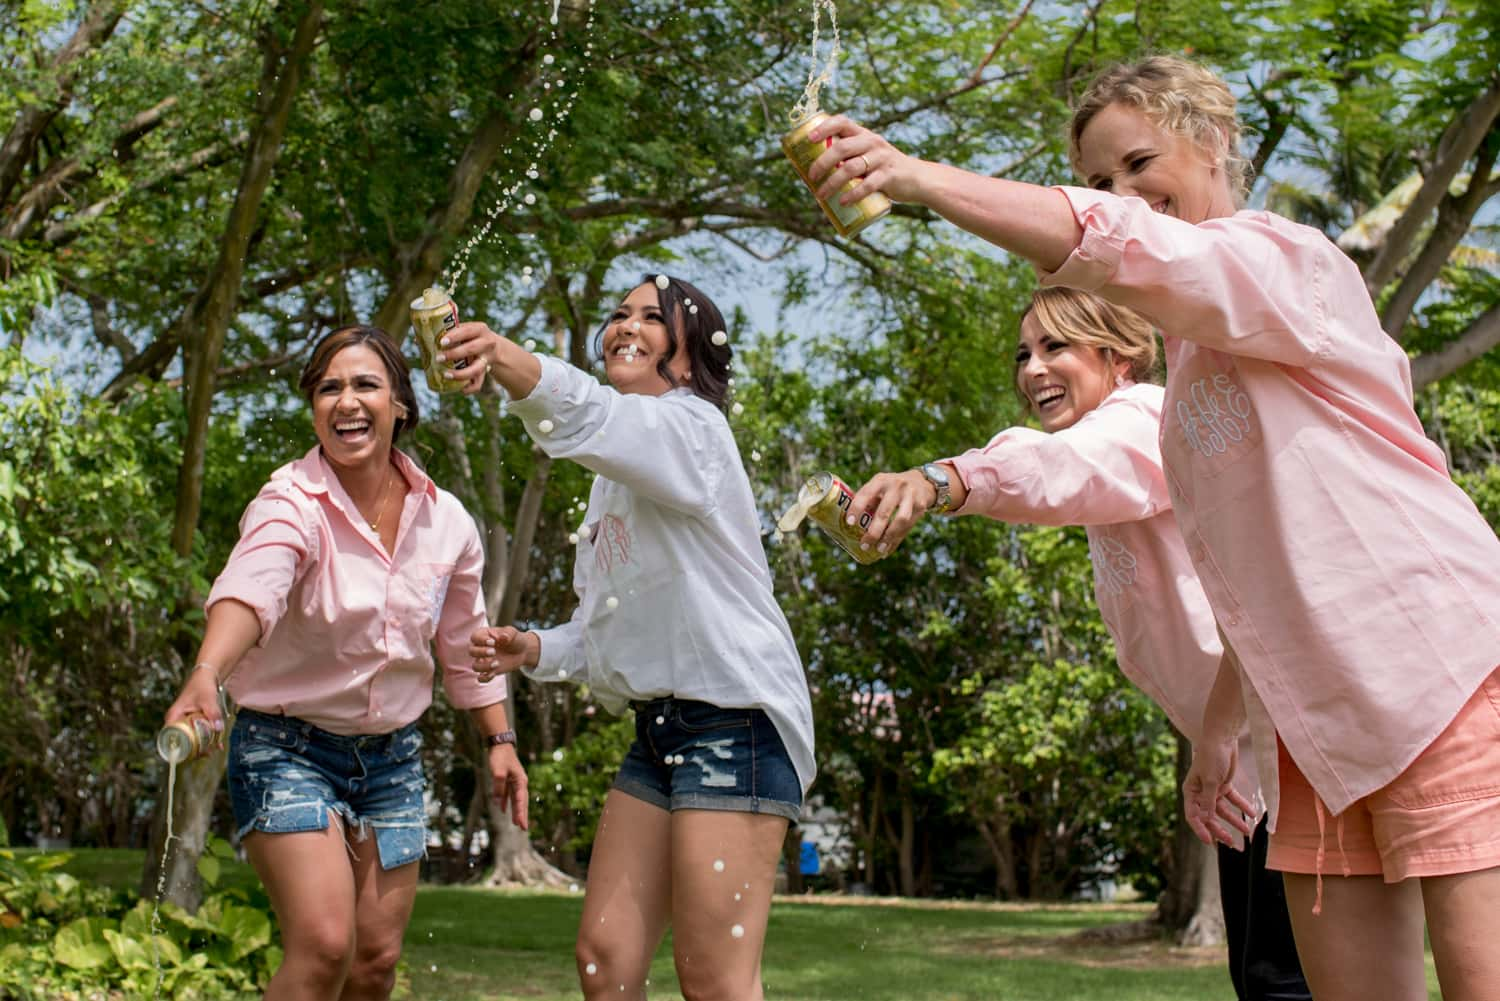 A bride and four of her bridesmaids playfully spraying beer onto the grass for a fun photogrpah